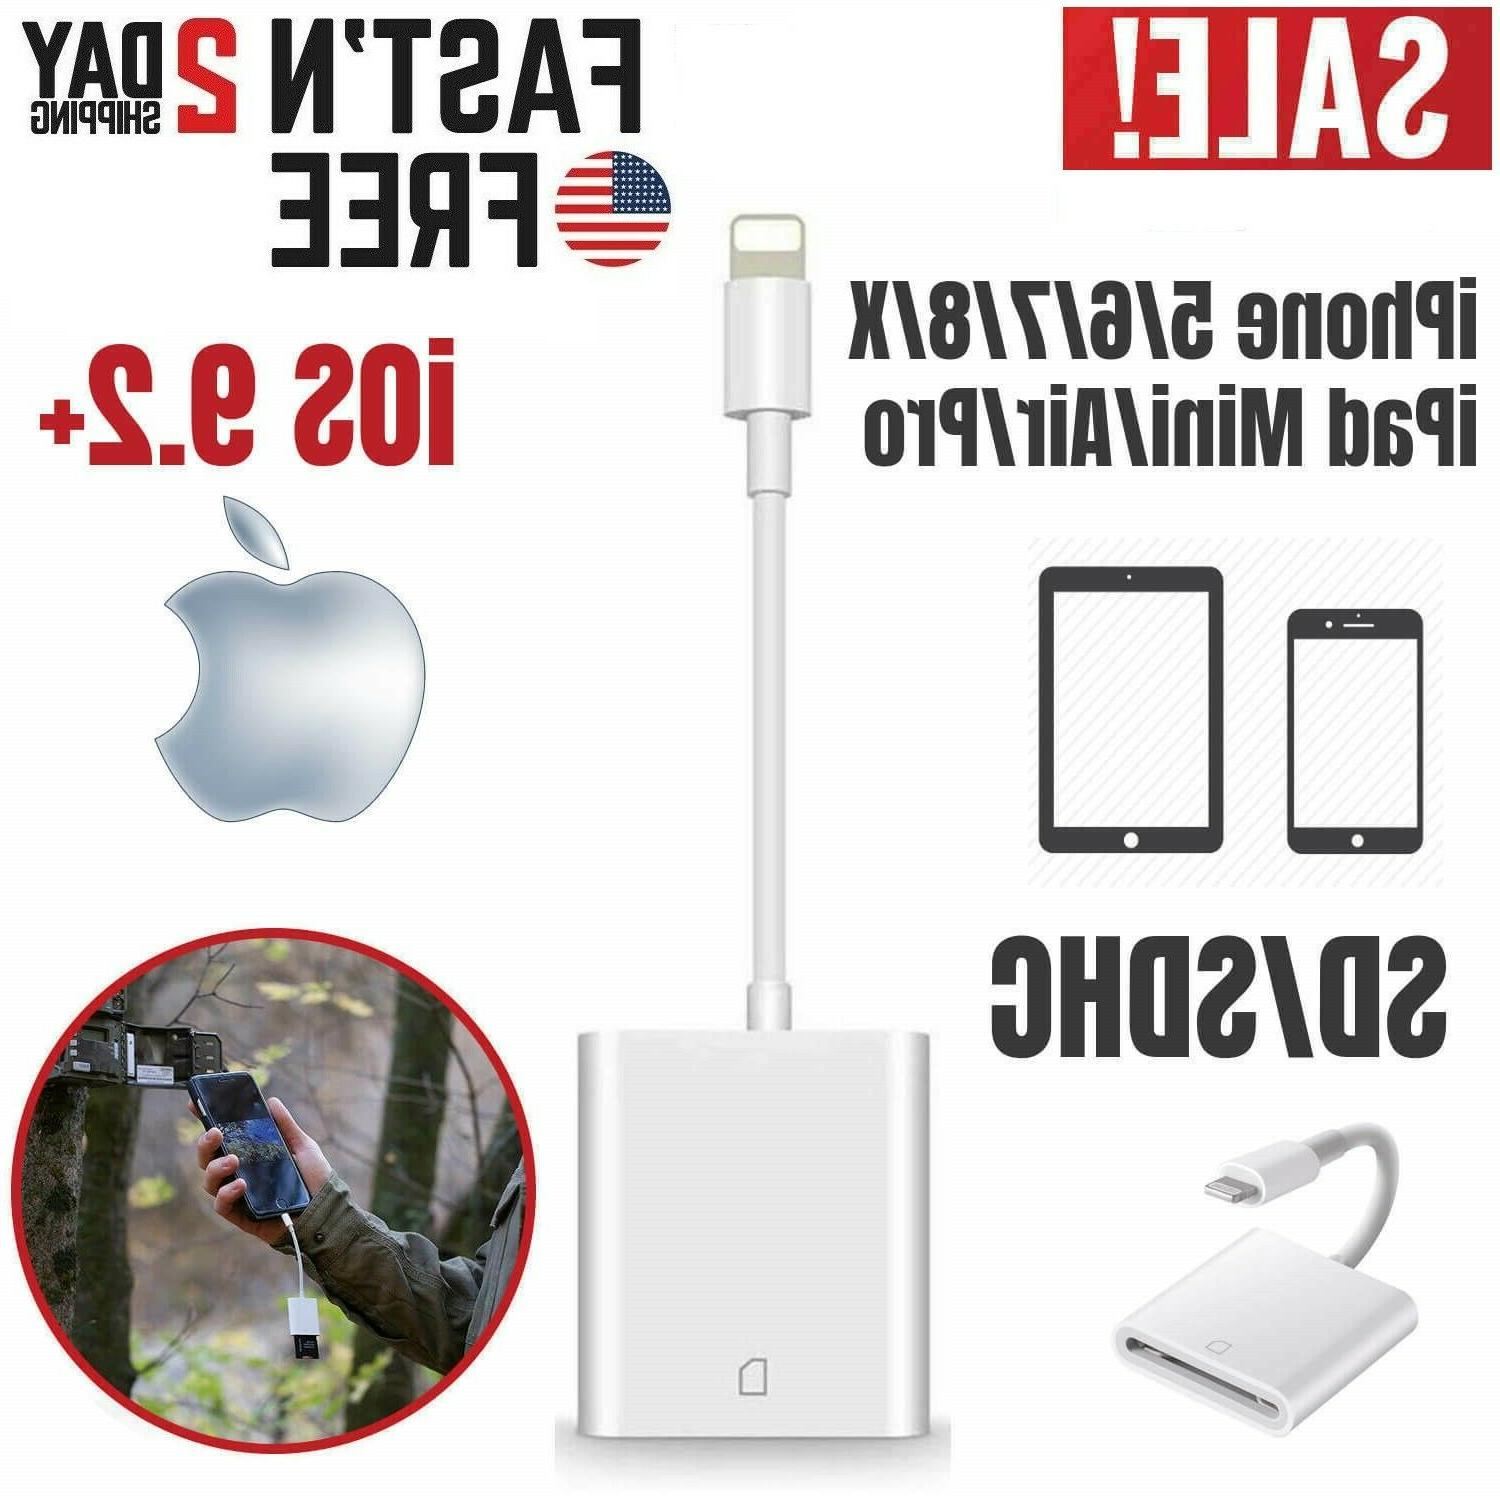 apple sd card reader for iphone lightning